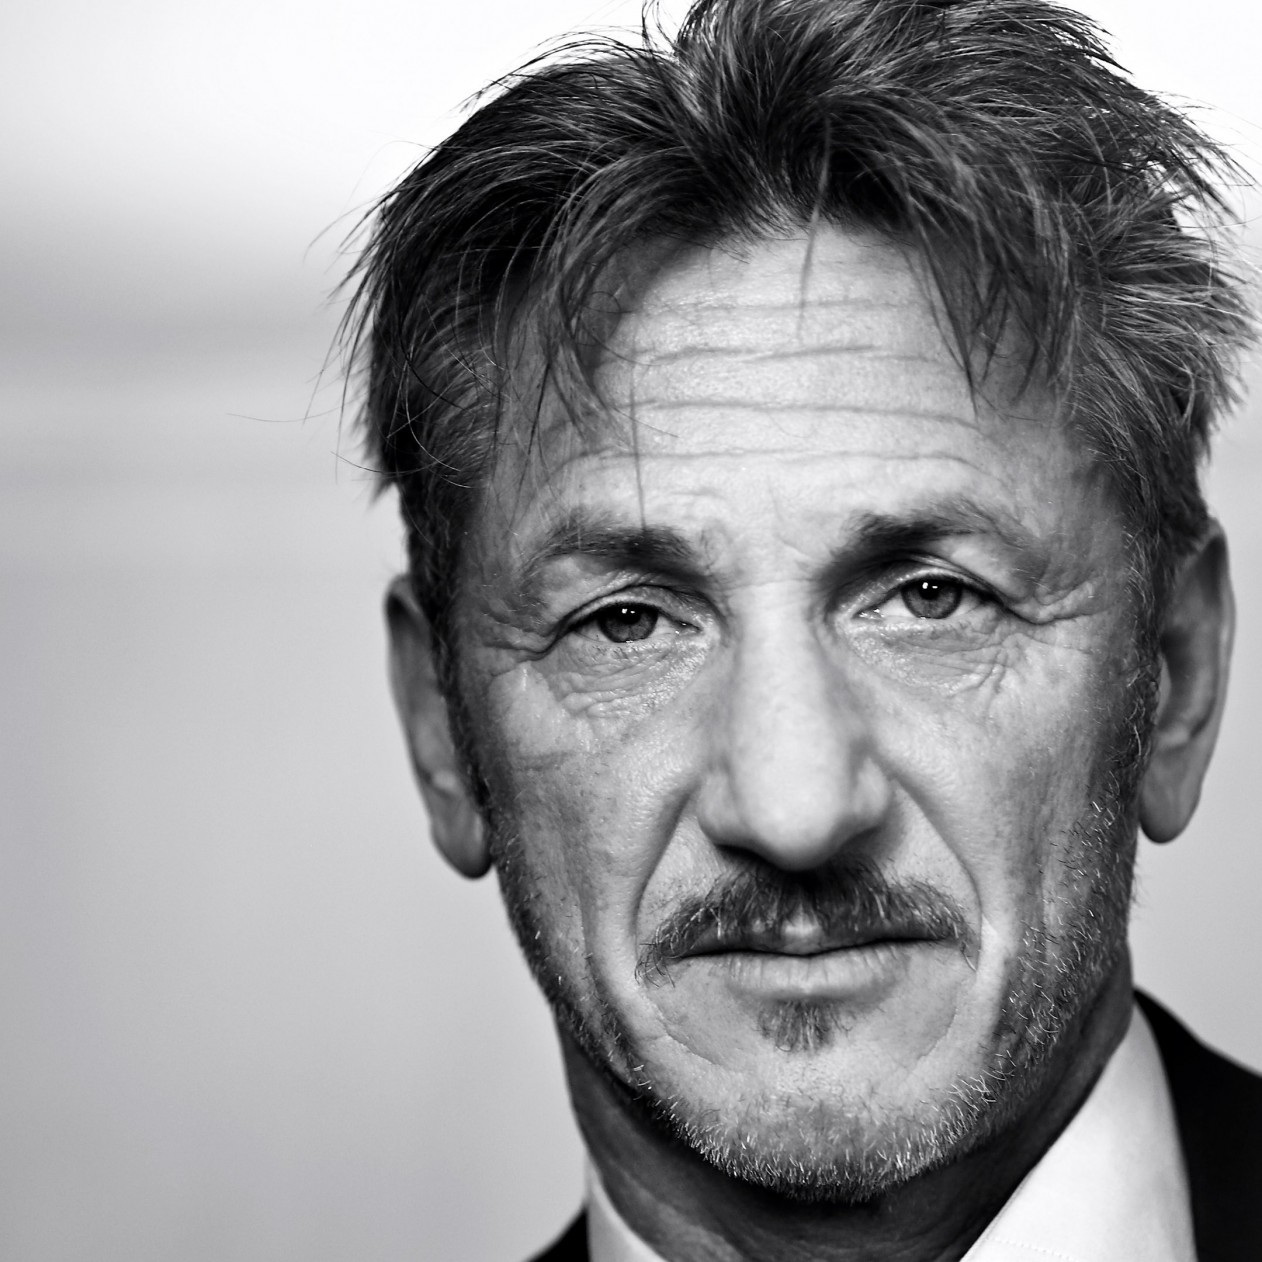 Sean Penn Portrait in Black & White Wallpaper for Apple iPad mini